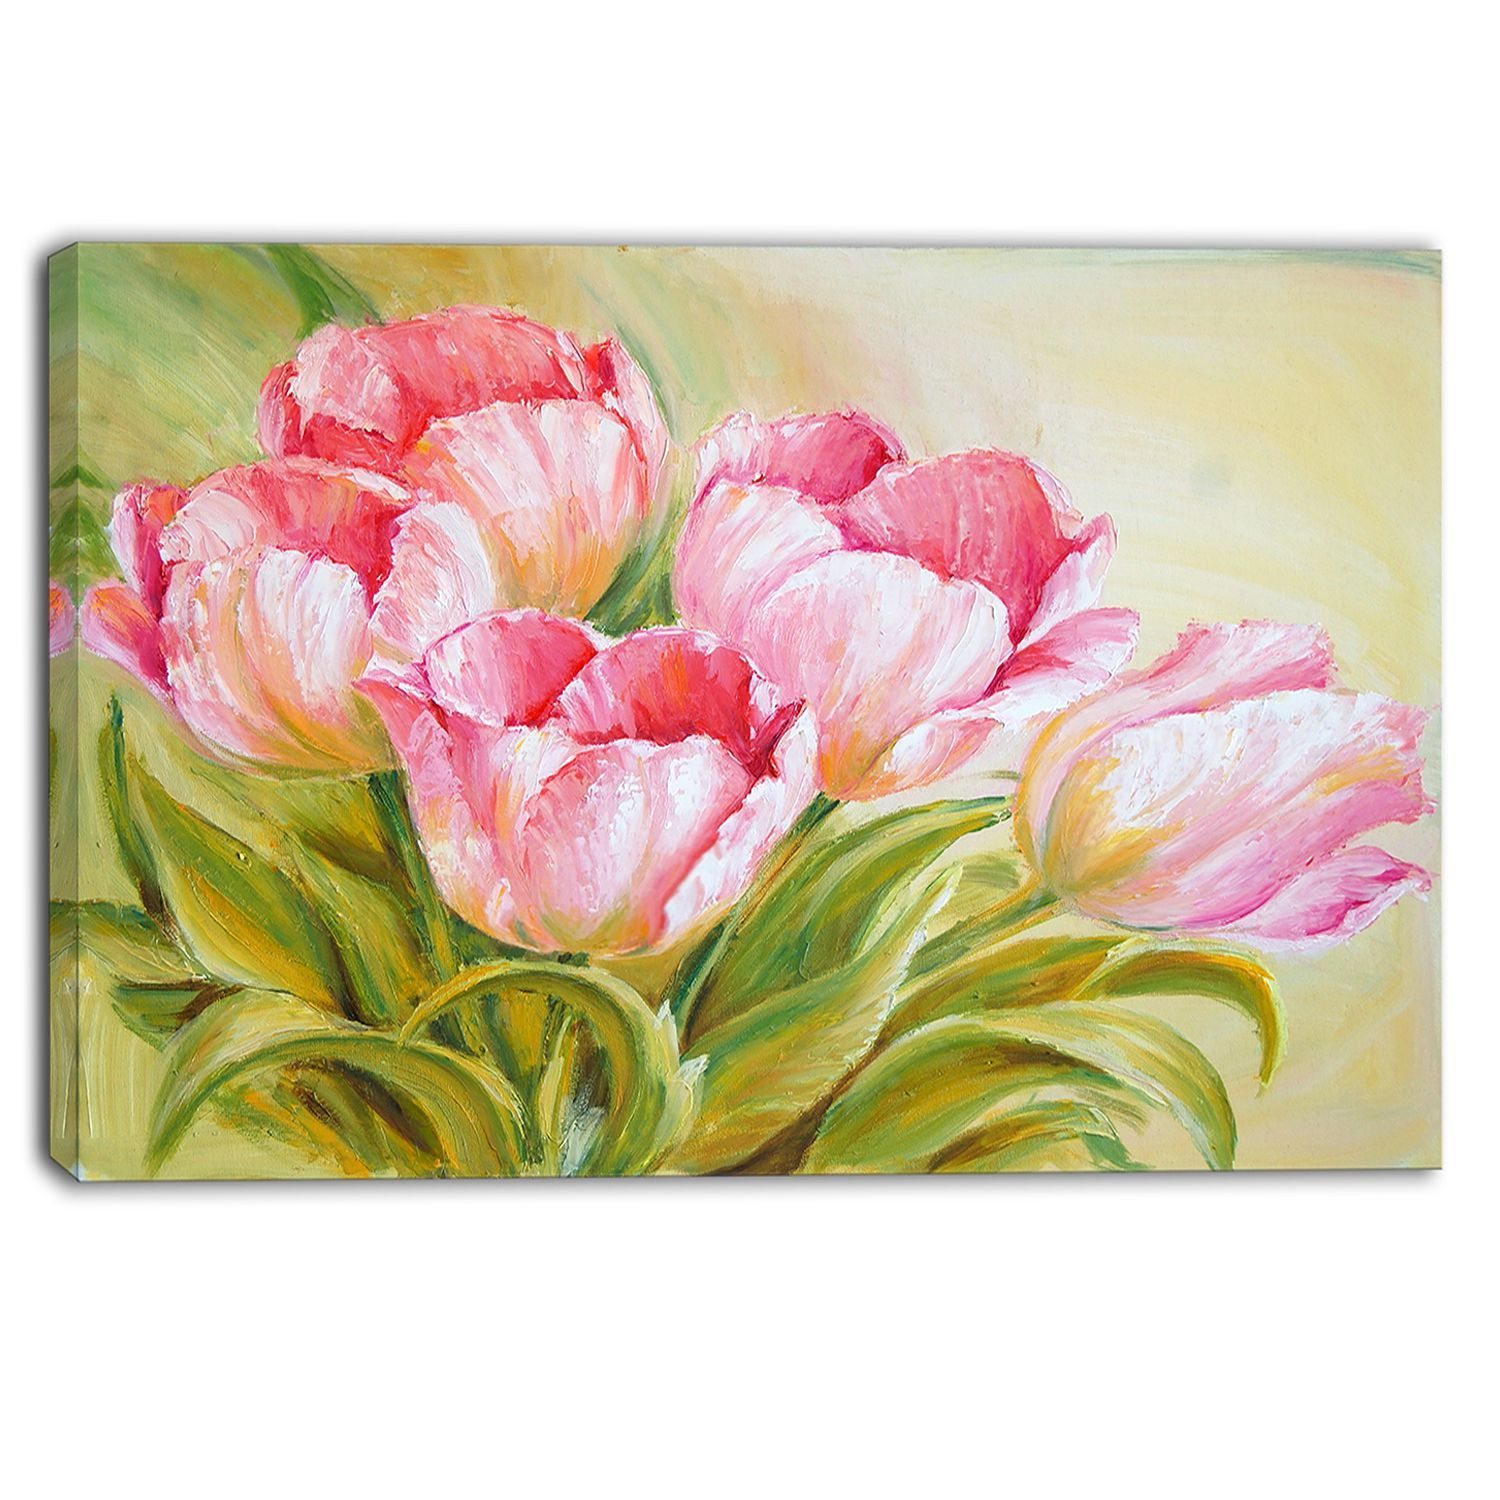 This Beautiful Floral Canvas Art Is Printed Using The Highest